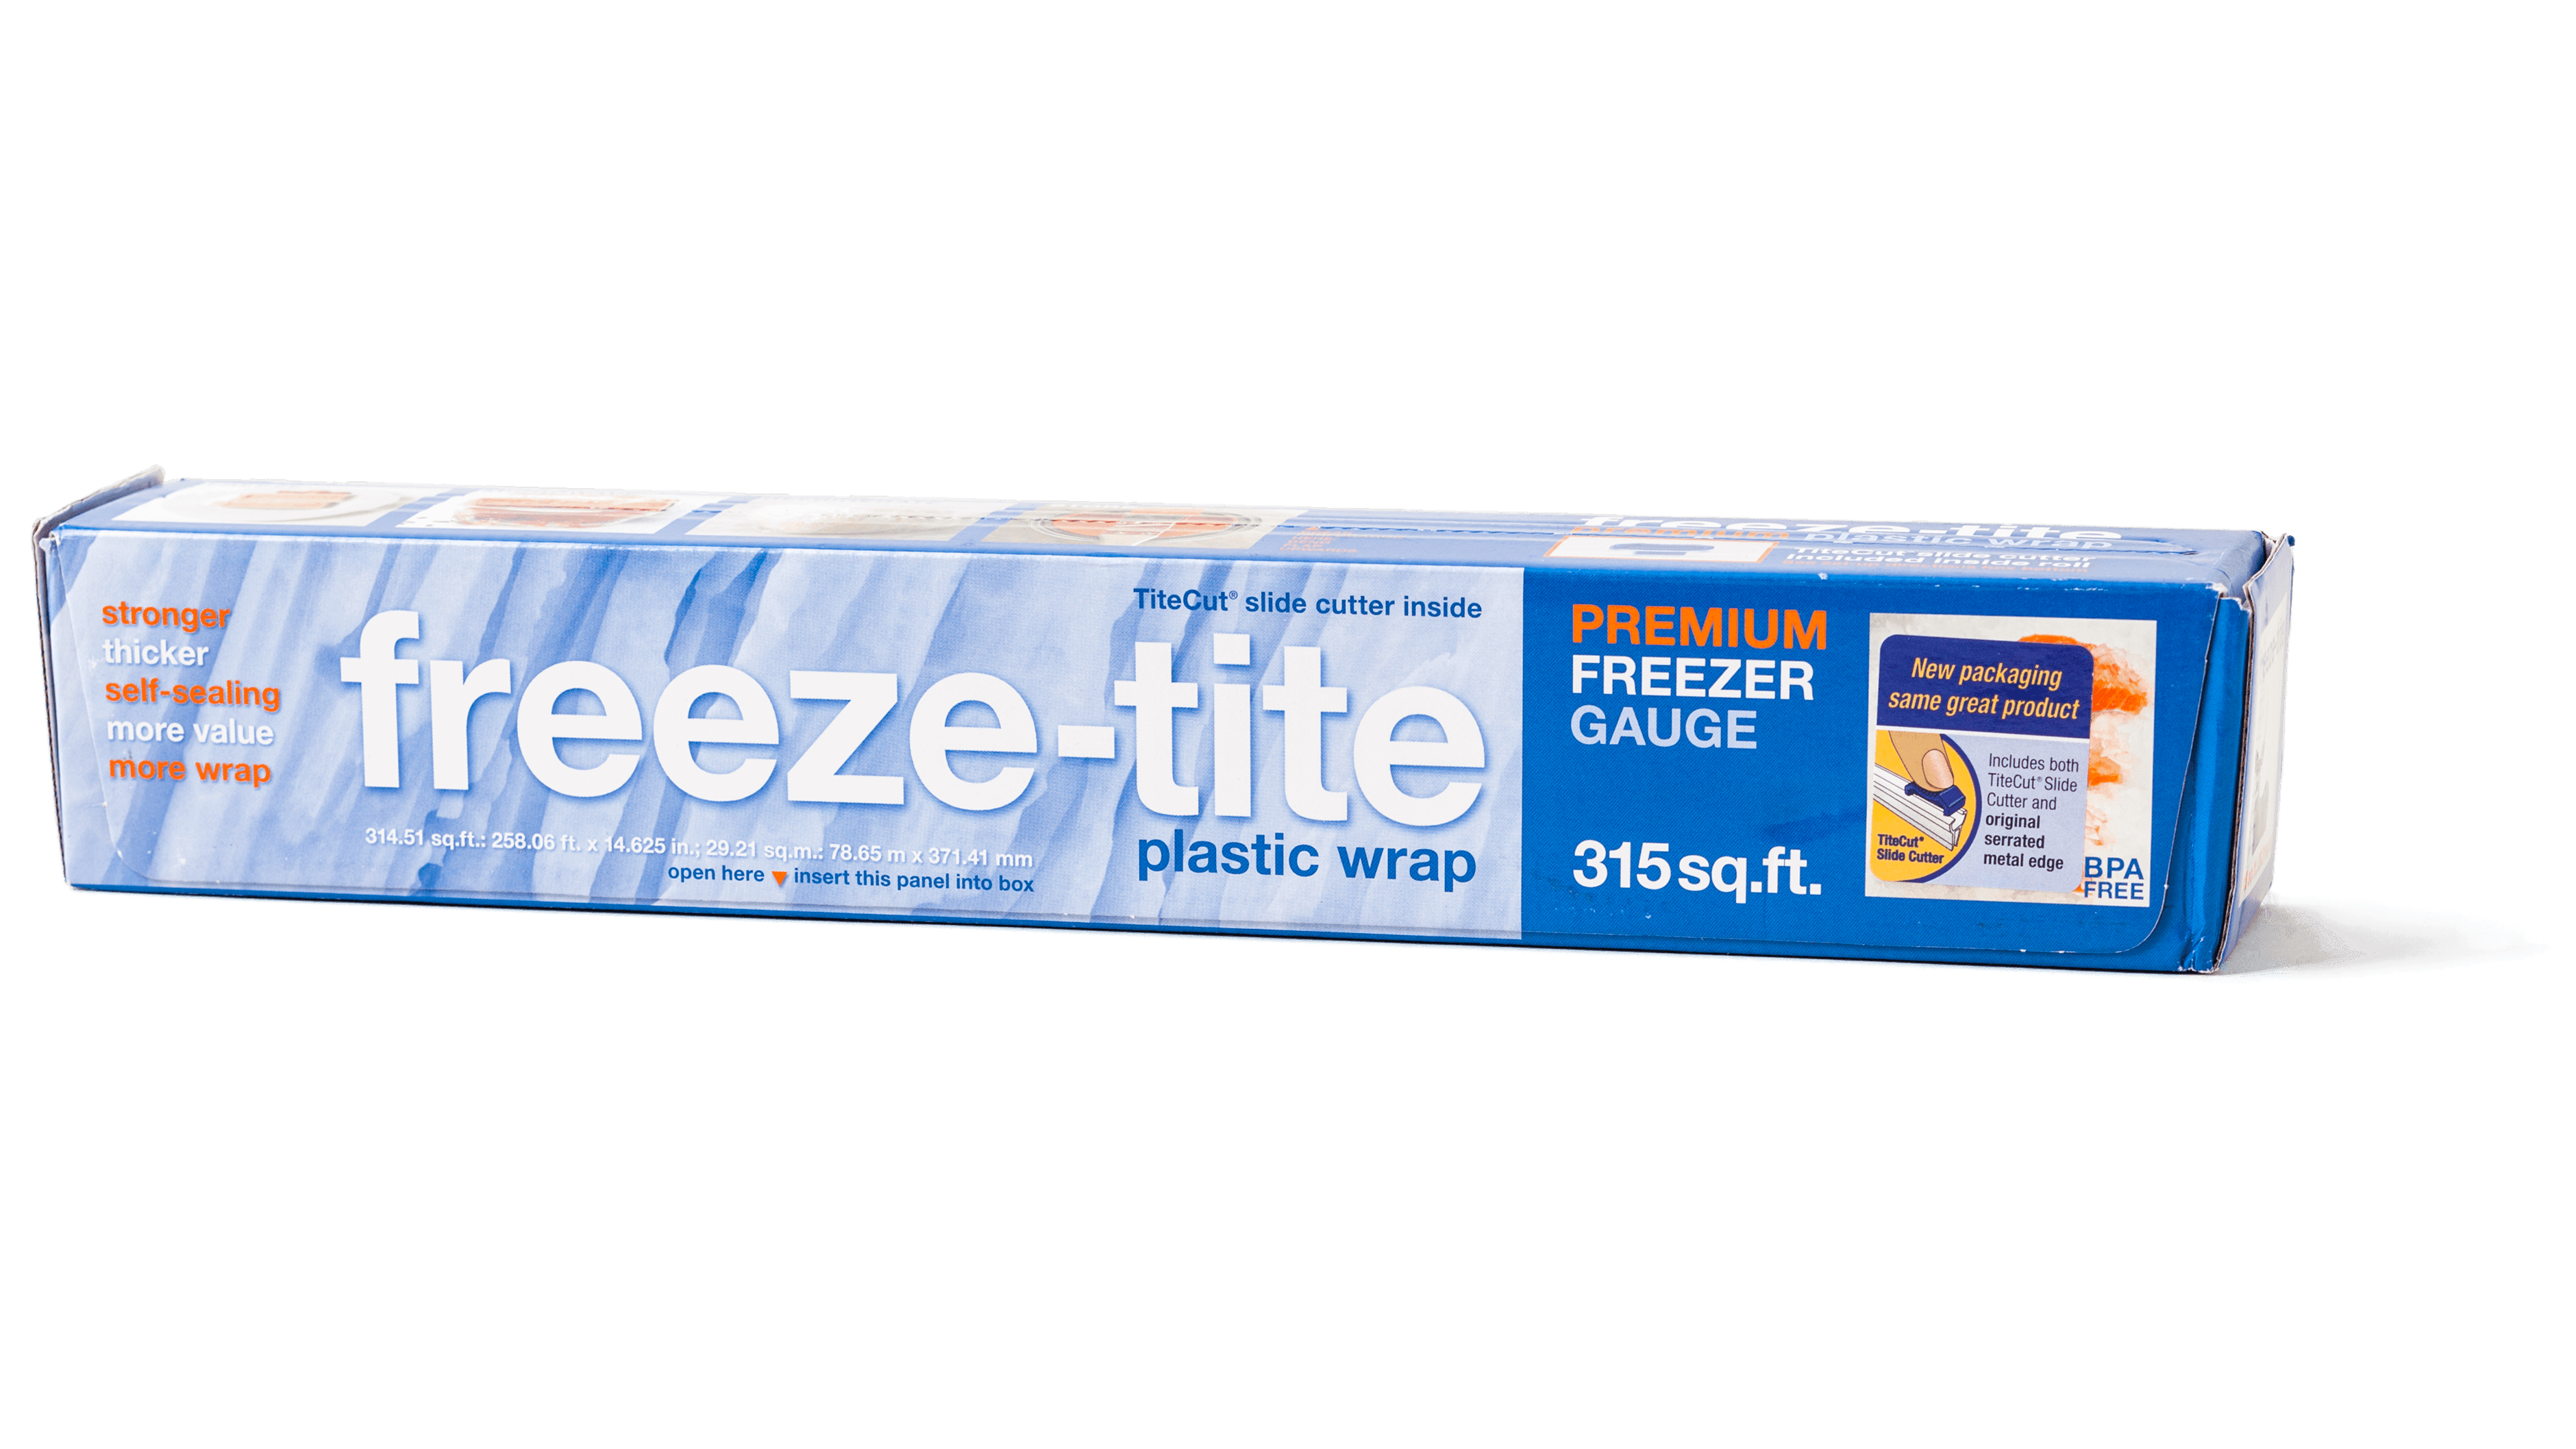 41185 sil plastic wraps freeze tite clear high cling freezer wrap 71 01525 sq